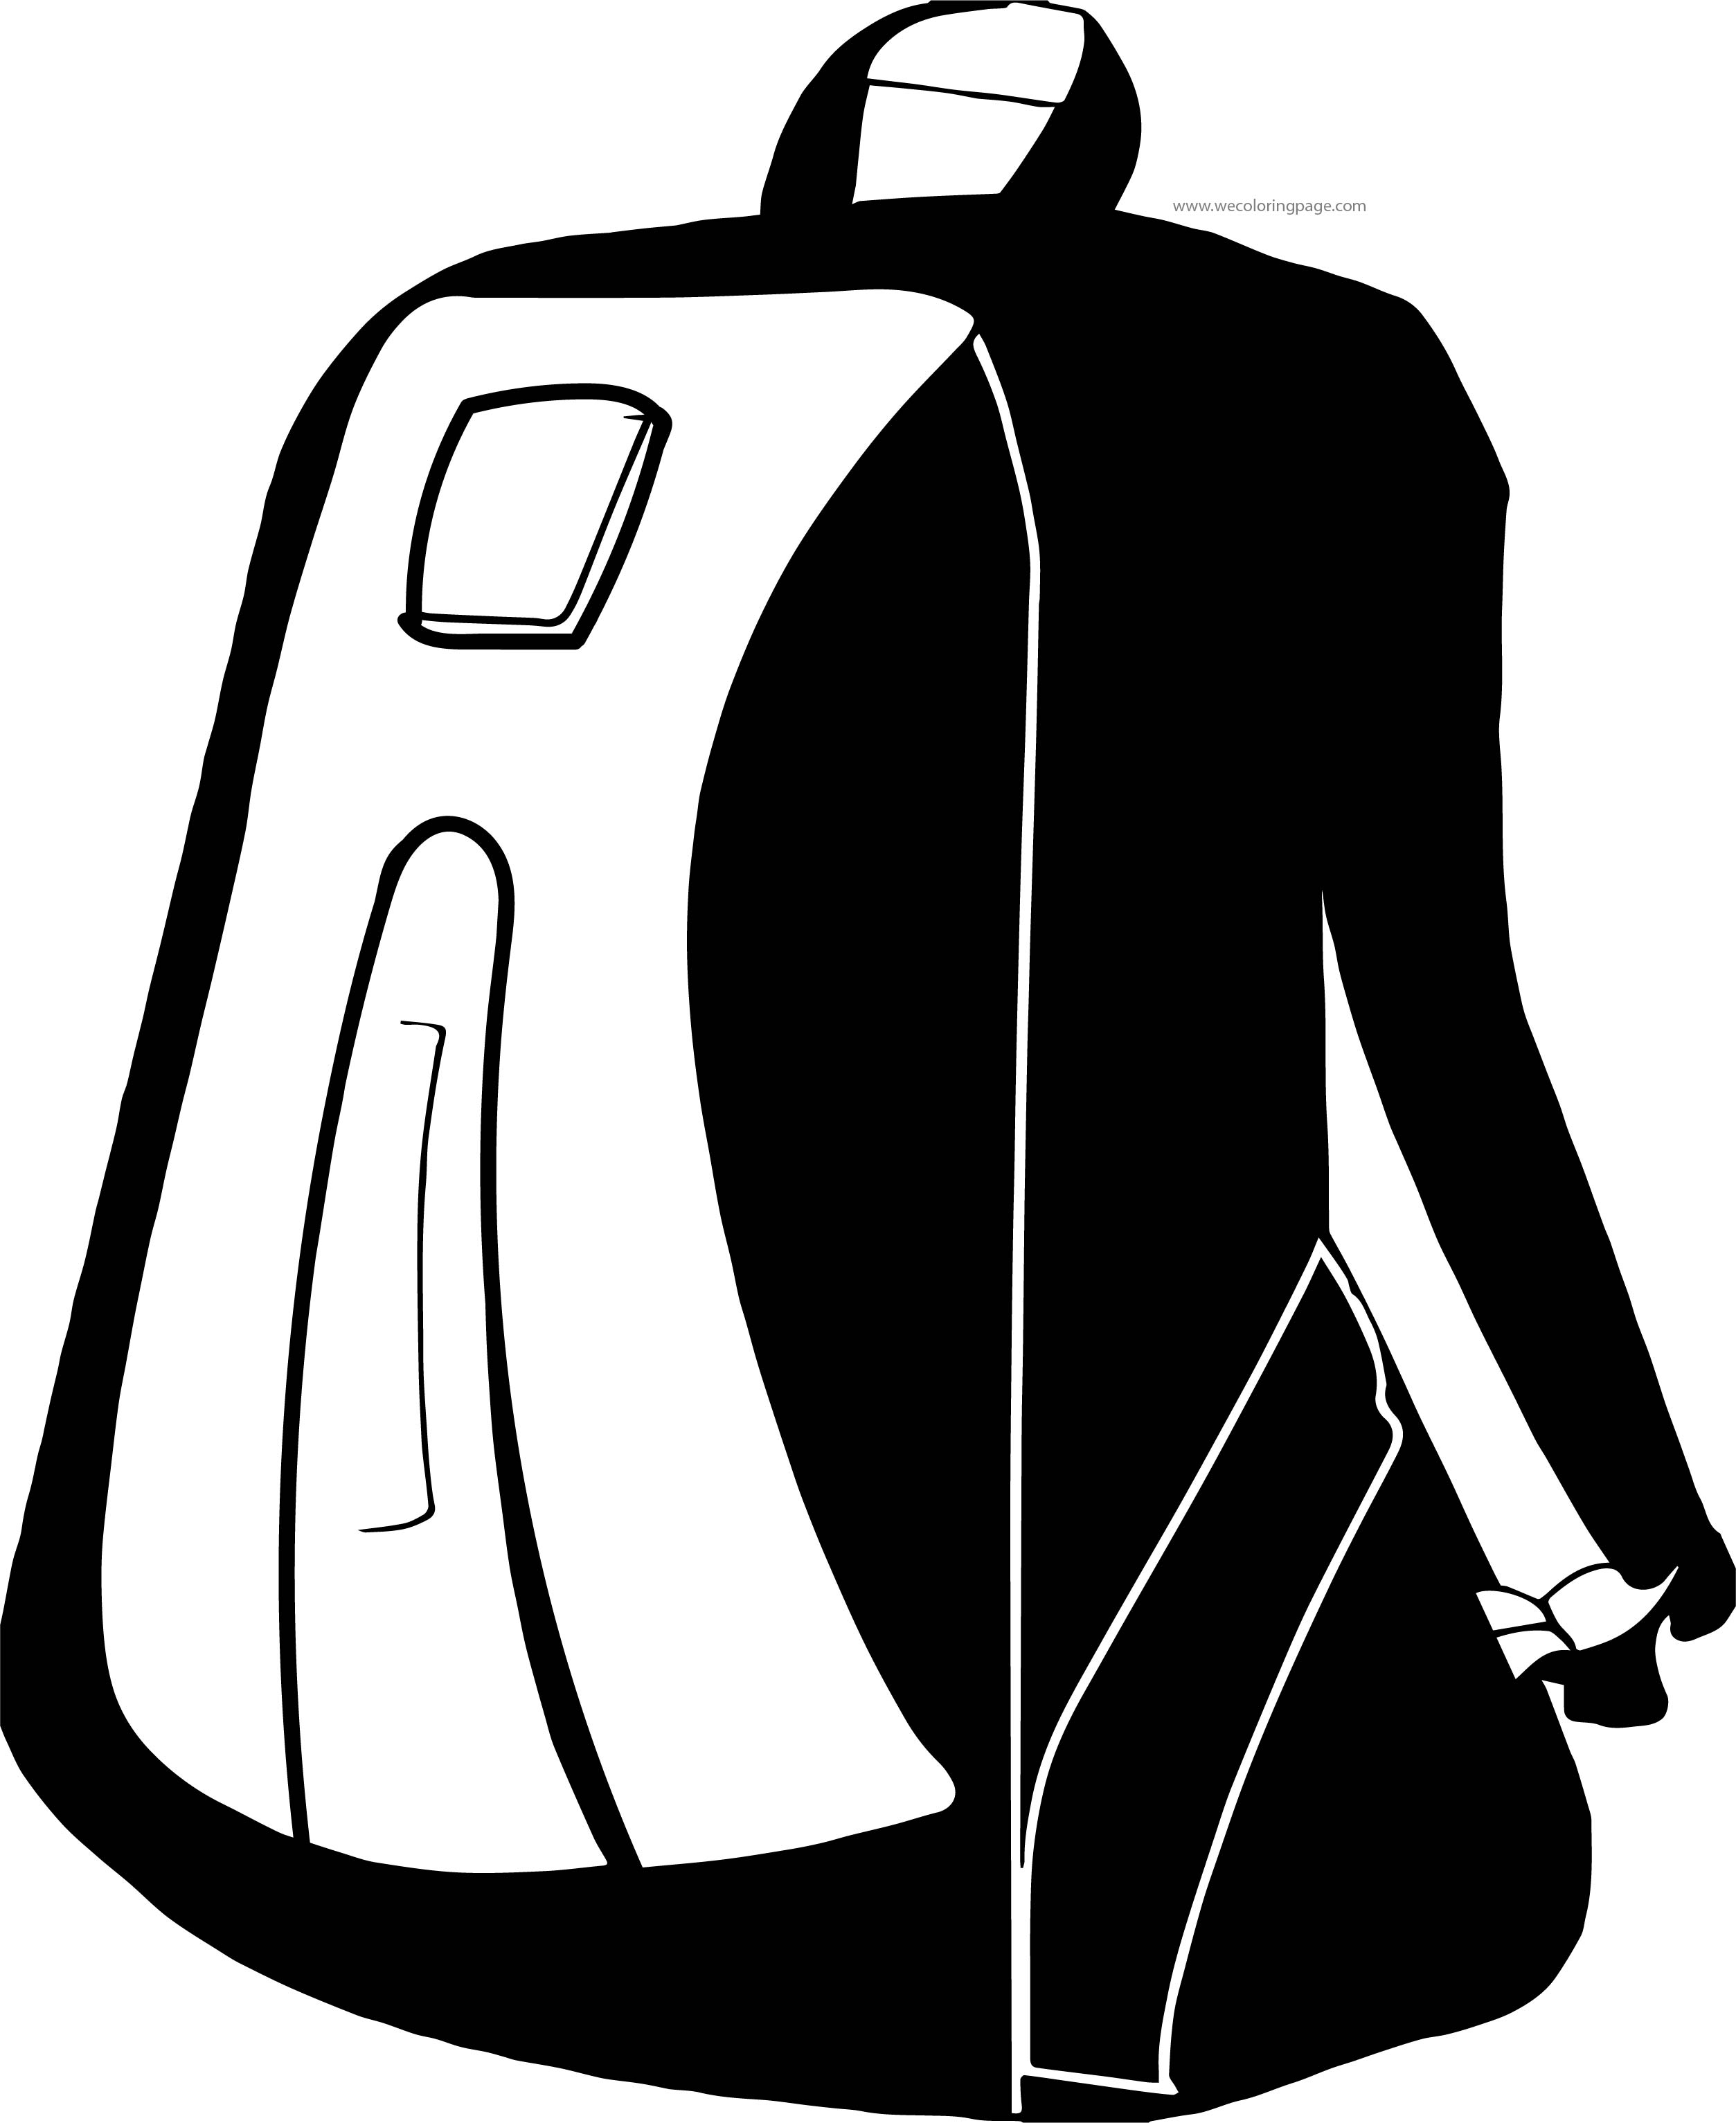 Can School Bag Coloring Page